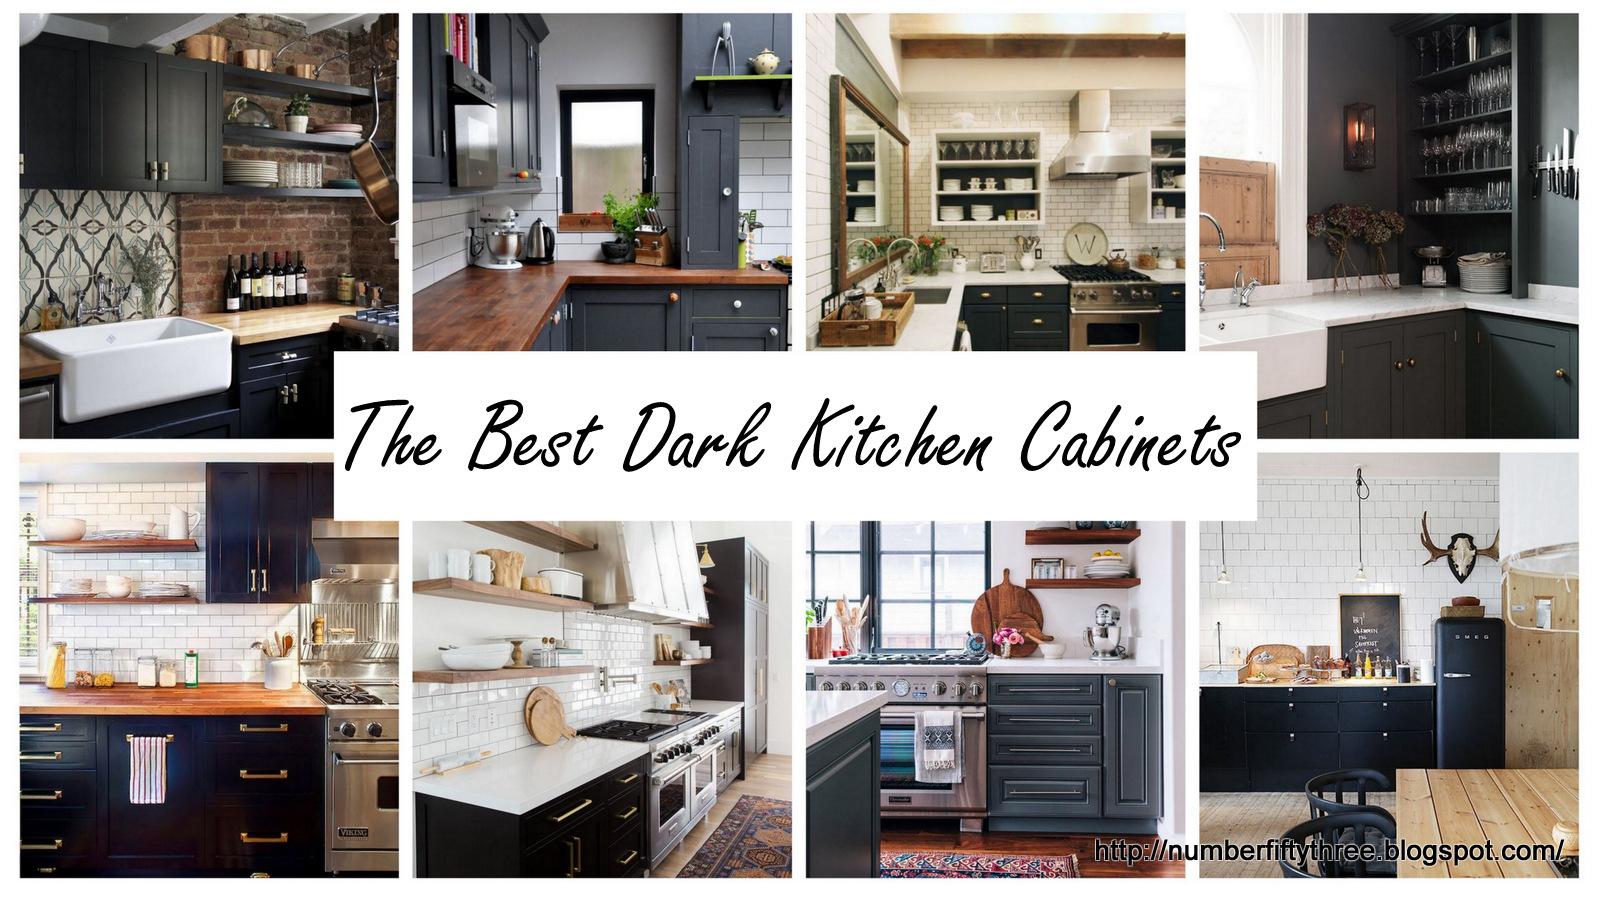 Number Fifty Three The Best Dark Kitchen Cabinets An Announcement